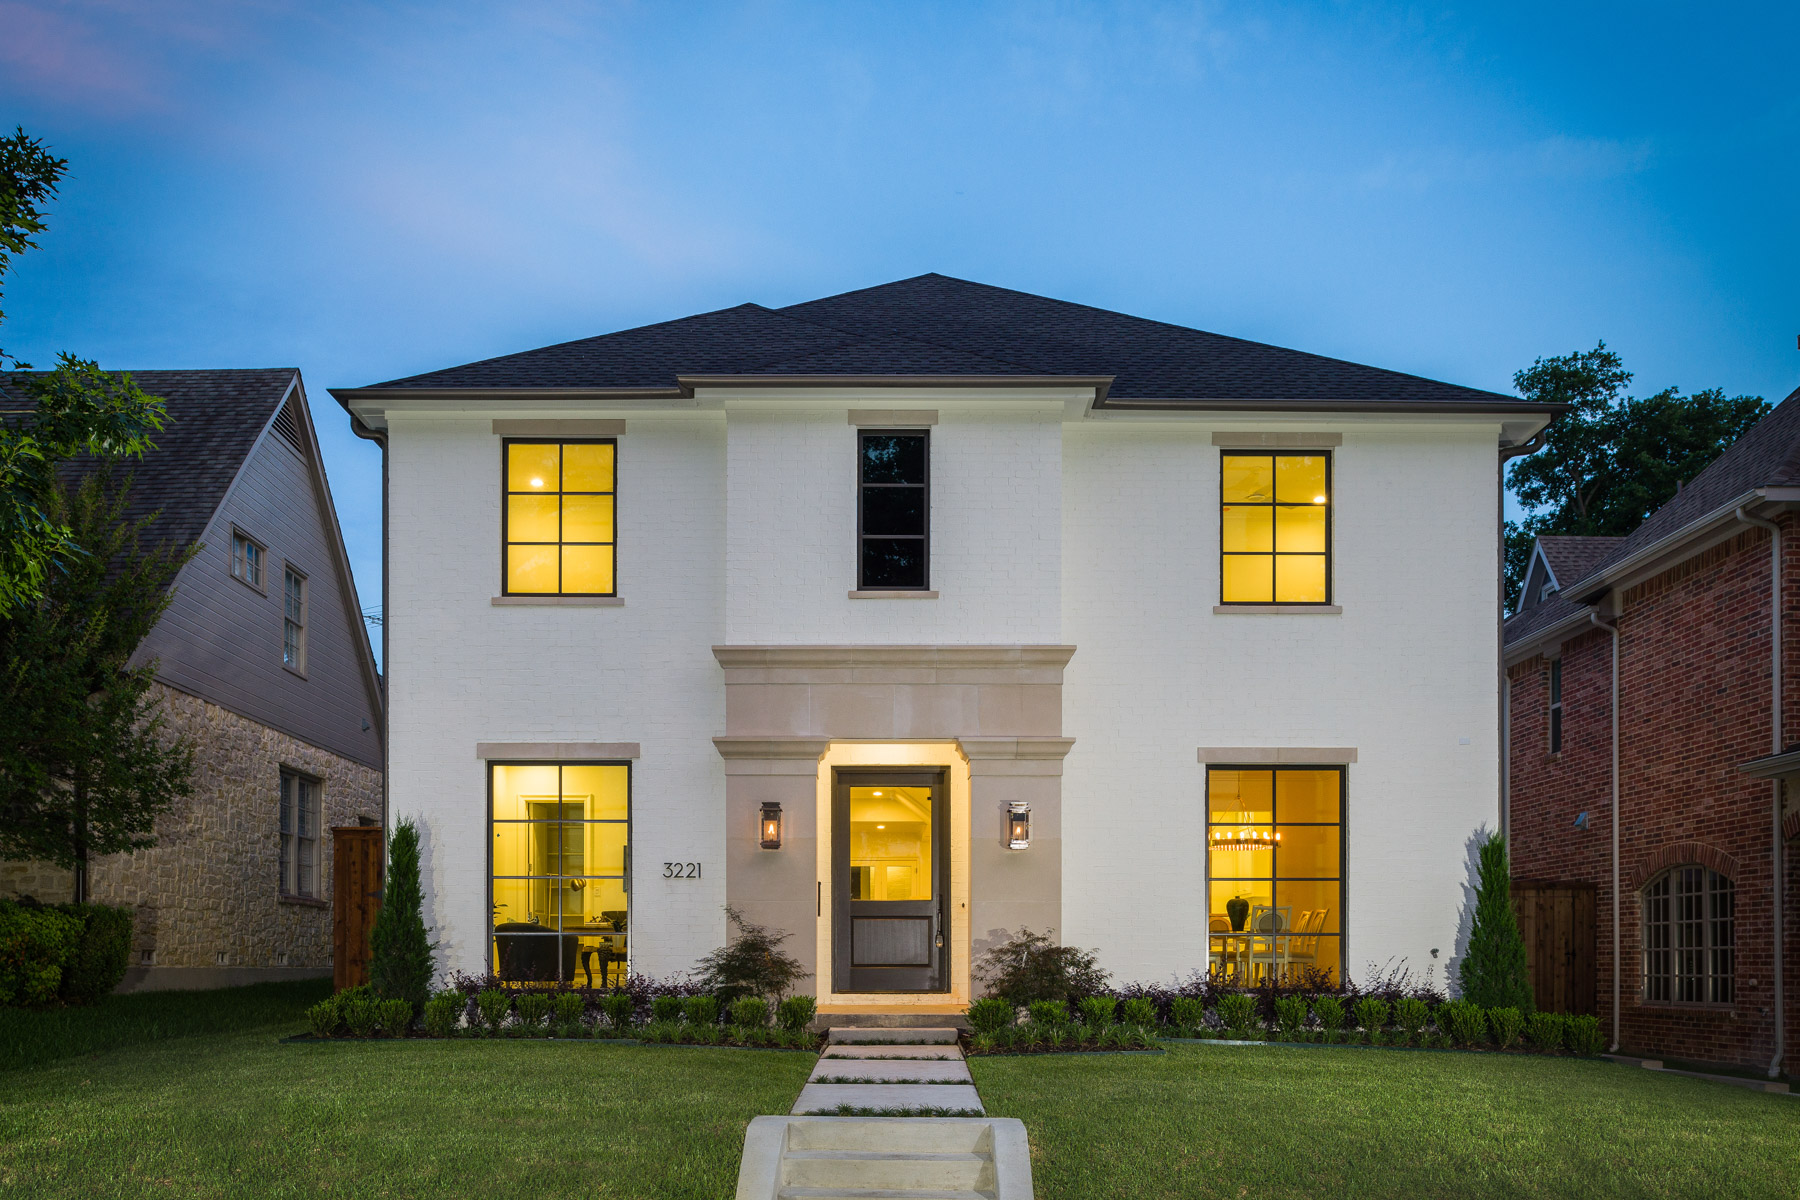 Single Family Home for Sale at University Park Transitional 3221 Rankin Street Dallas, Texas, 75205 United States